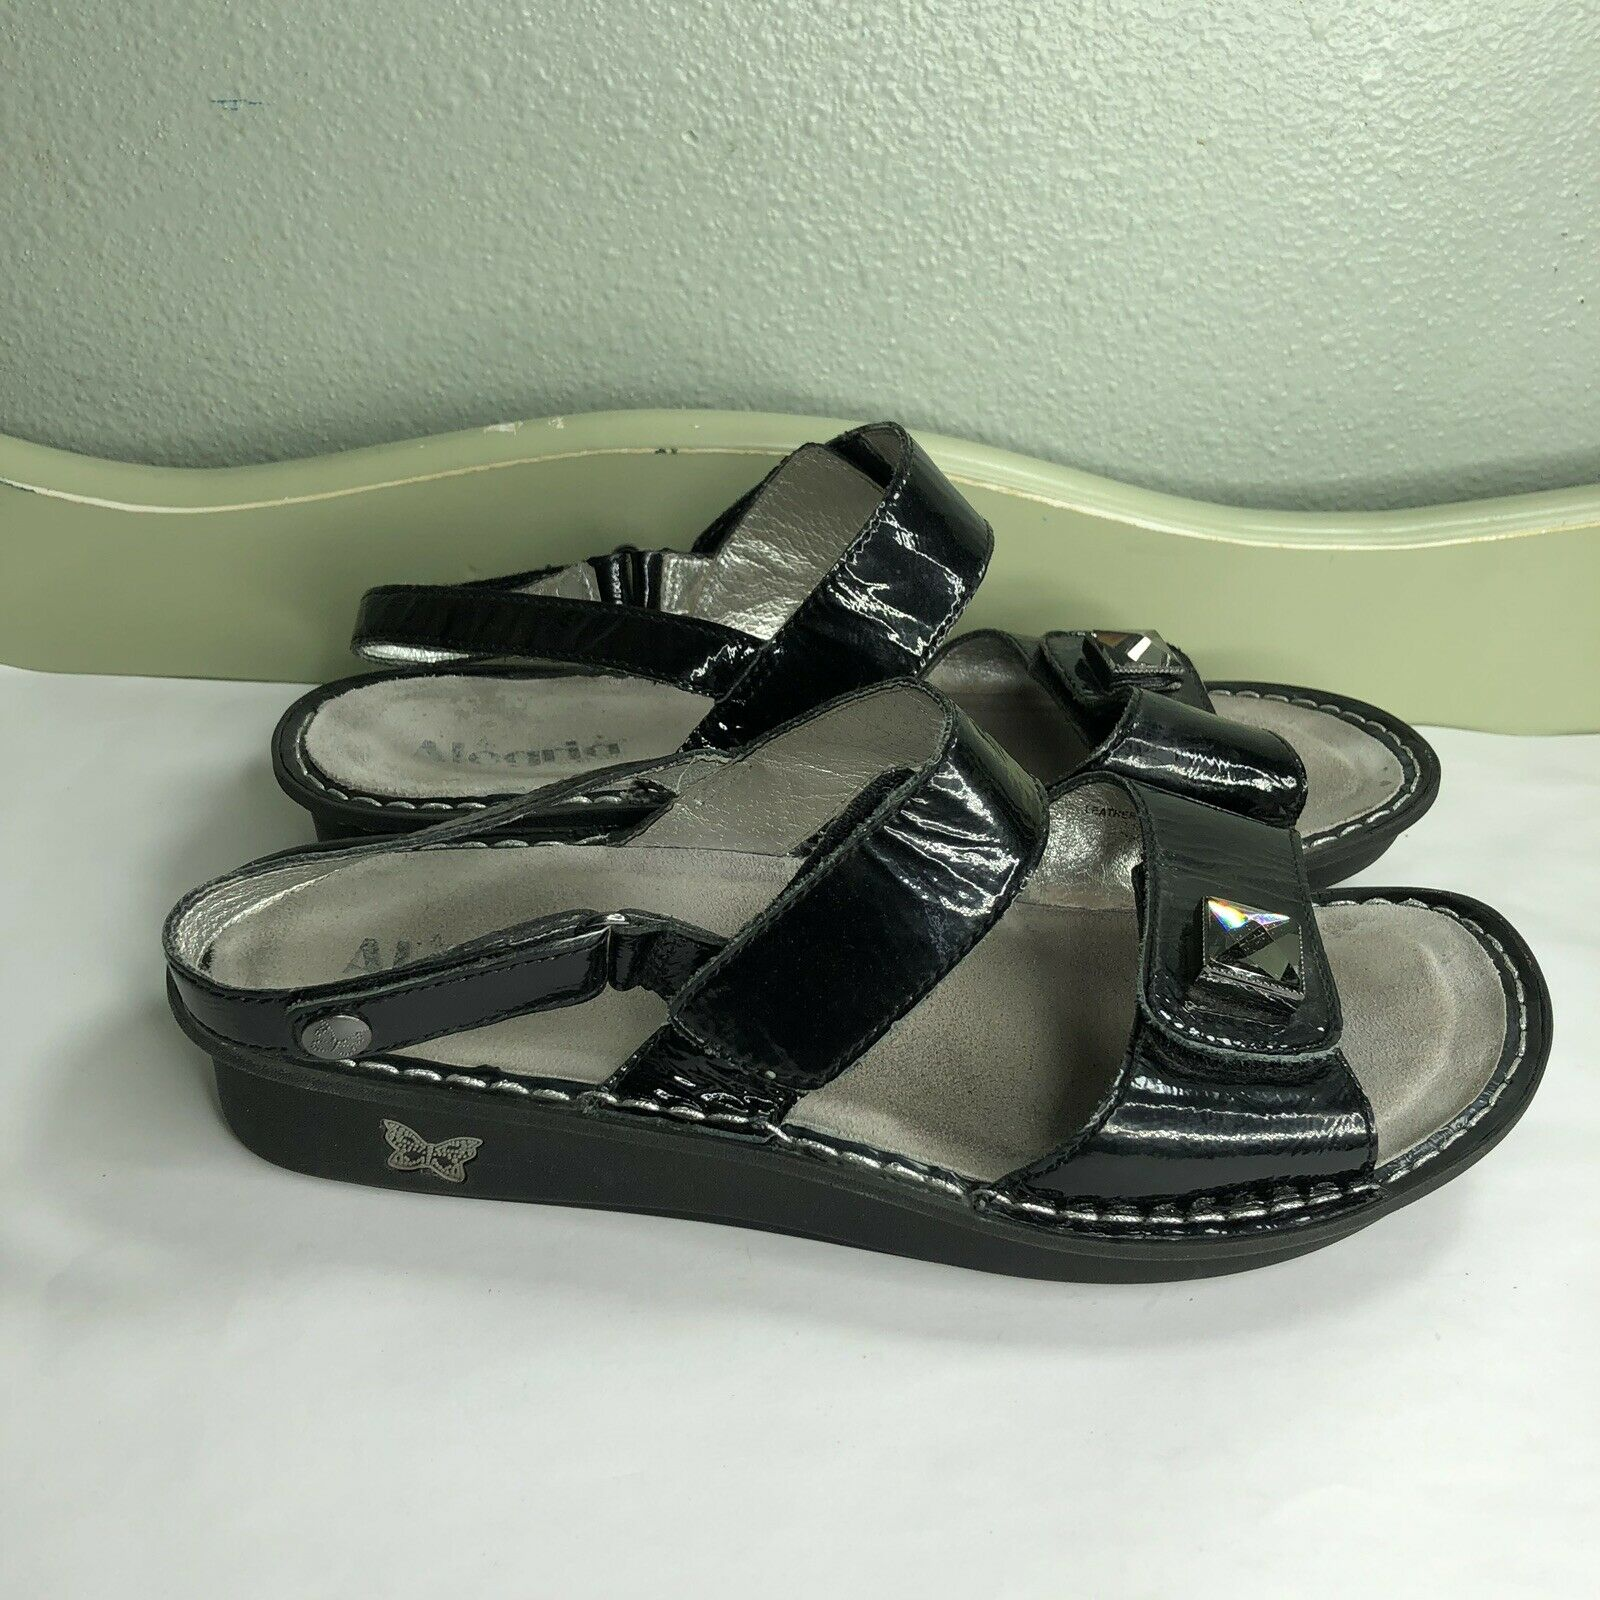 Alegria Sport Sandals Women Size 41 US 10 Black Patent Upper